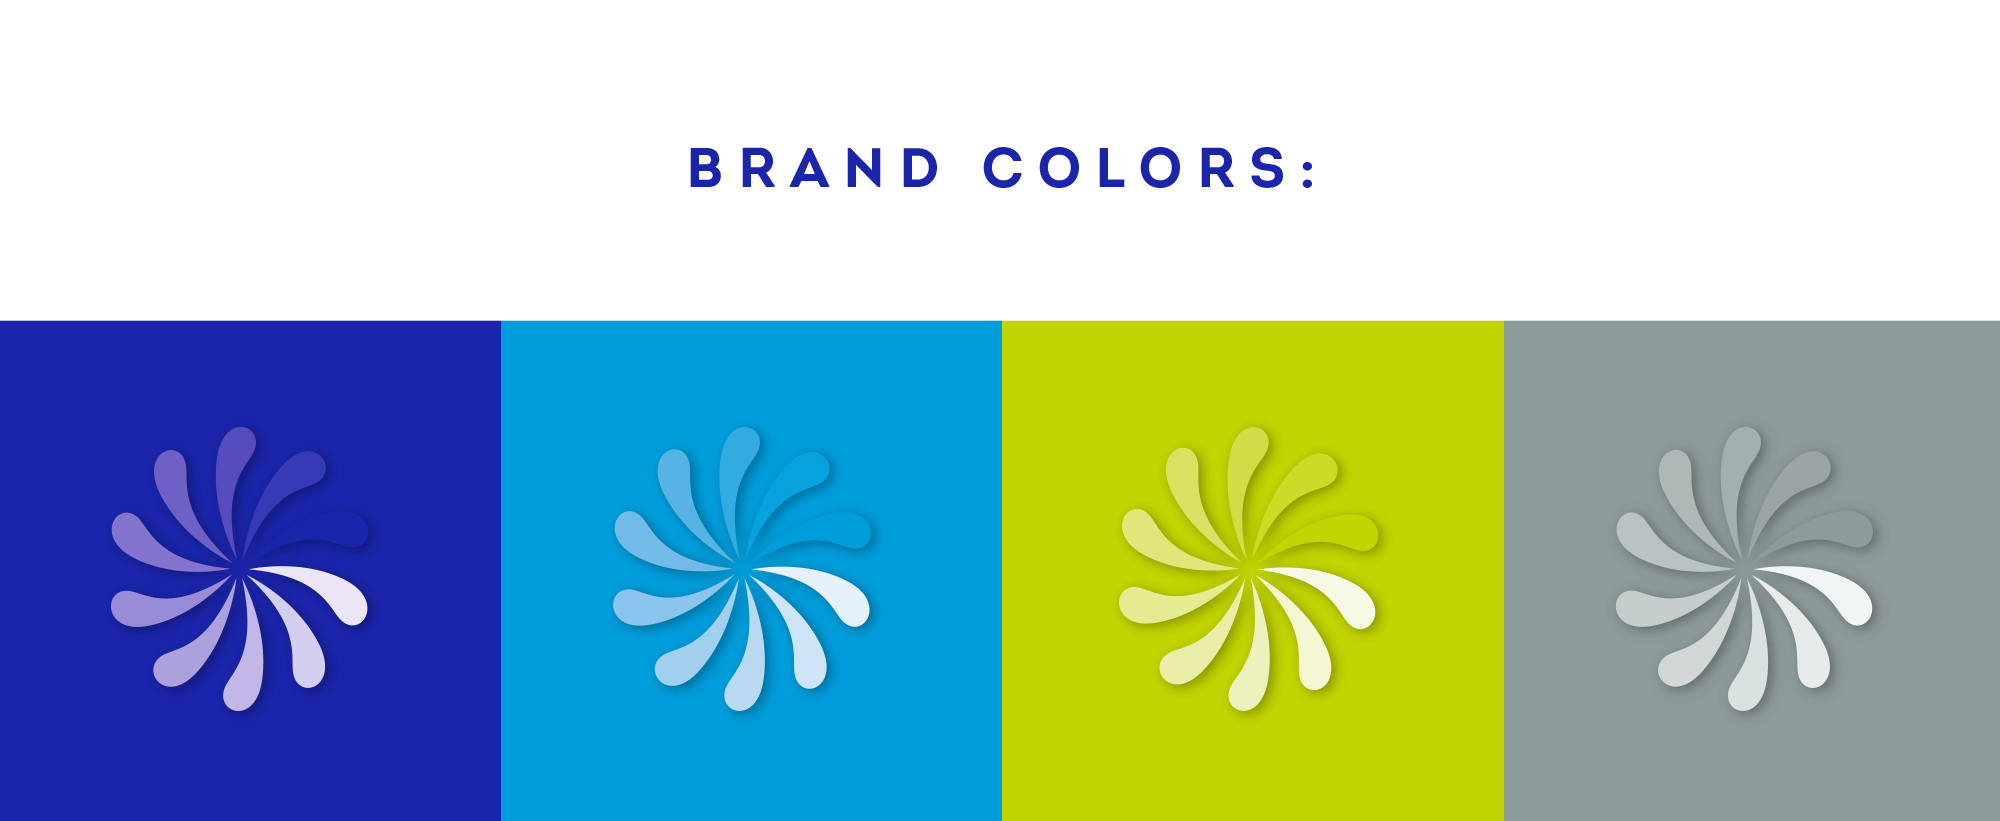 MeWash brand colors